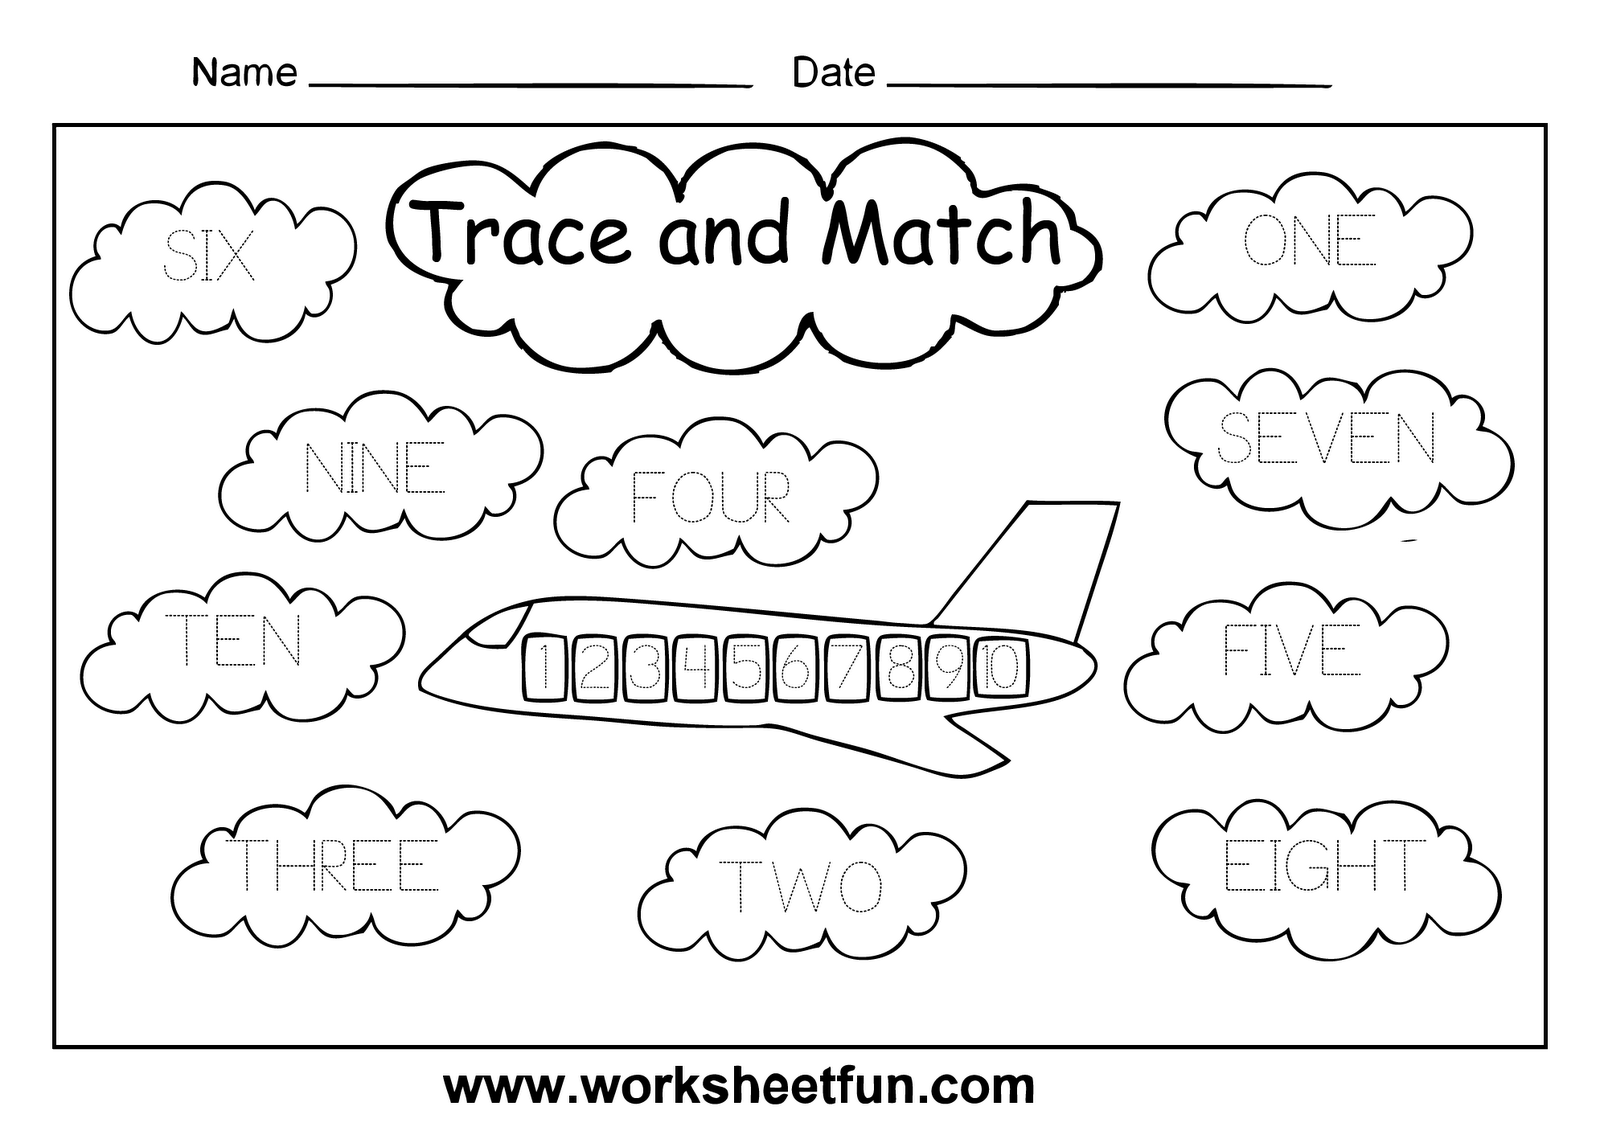 Proatmealus  Sweet Worksheet Numbers    Reocurent With Exciting Ou Worksheet Besides Irregular Verbs Past Tense Worksheet Furthermore Coordinate Picture Worksheet With Amazing Lcm And Gcf Worksheets For Th Grade Also Addition And Subtraction Of Fractions Worksheet In Addition Letter Y Worksheets For Kindergarten And Writing For First Grade Worksheets As Well As Long I Silent E Worksheets Additionally  States Worksheets Printable From Reocurentcom With Proatmealus  Exciting Worksheet Numbers    Reocurent With Amazing Ou Worksheet Besides Irregular Verbs Past Tense Worksheet Furthermore Coordinate Picture Worksheet And Sweet Lcm And Gcf Worksheets For Th Grade Also Addition And Subtraction Of Fractions Worksheet In Addition Letter Y Worksheets For Kindergarten From Reocurentcom